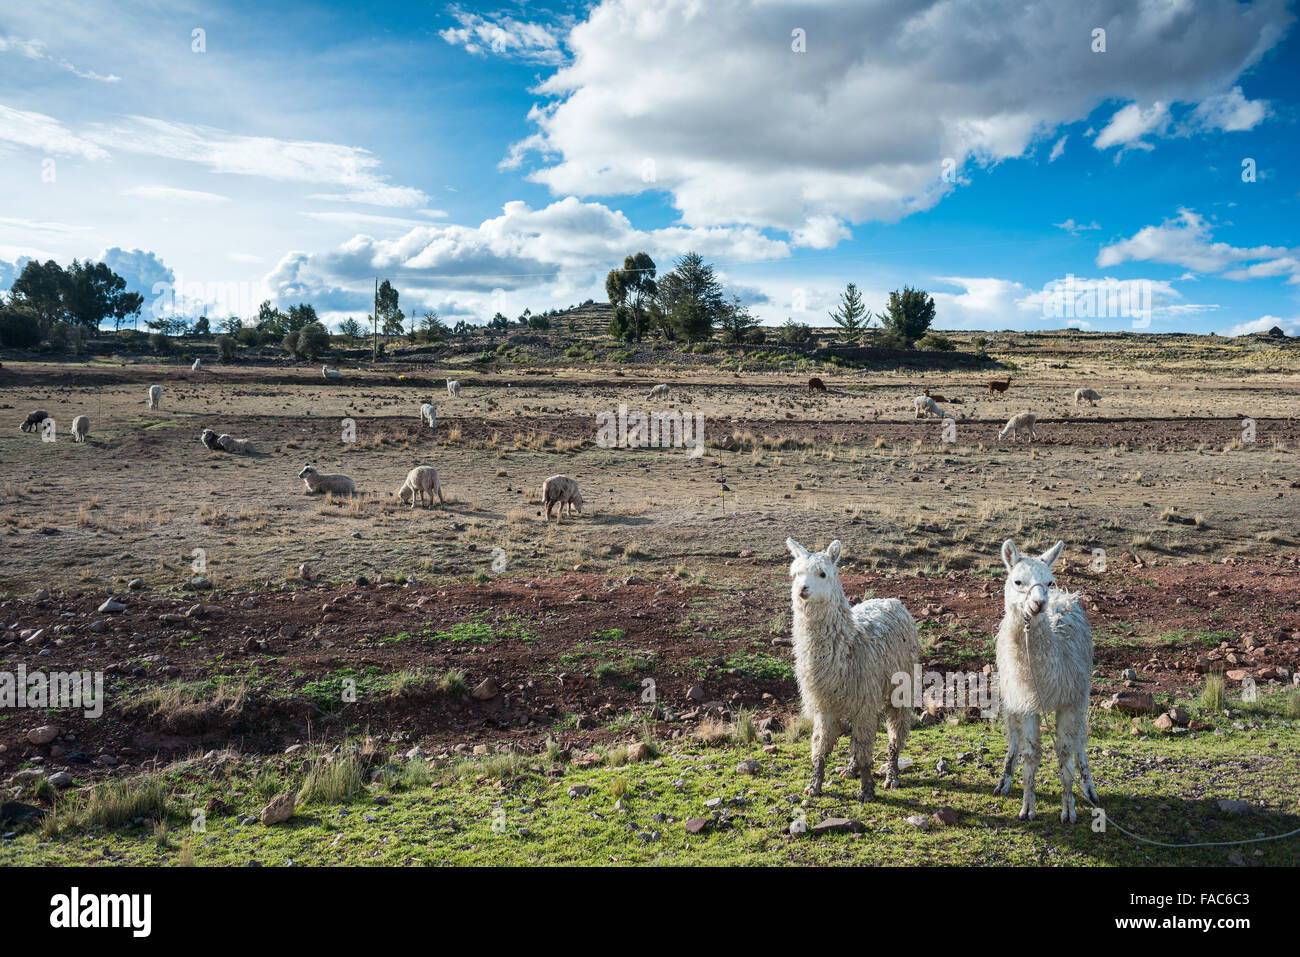 llamas are front of Terraced Inca fields and ruins of village in the Andes, Puno, Peru, South America - Stock Image